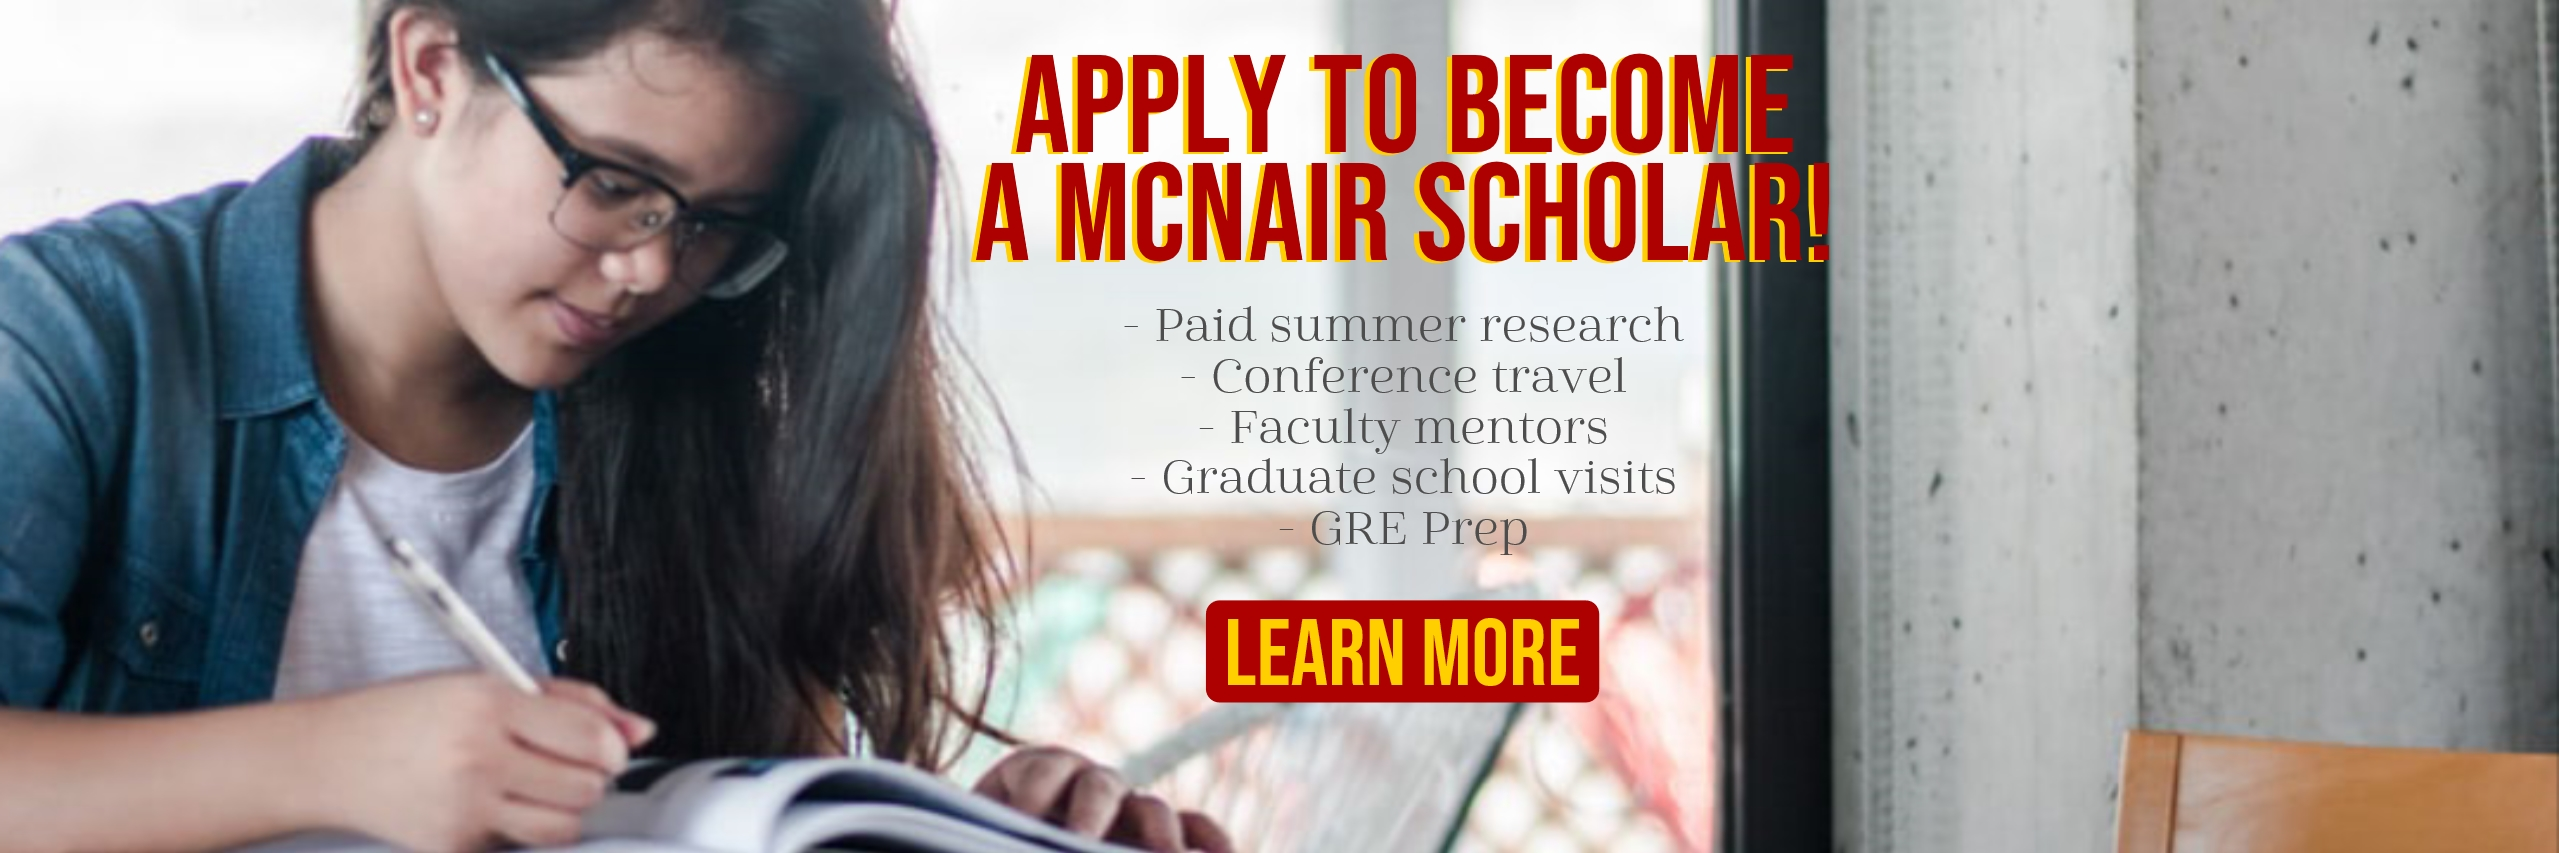 Apply to become a McNair Scholar! - Paid summer research - Conference travel - Faculty mentors - Graduate school visits - GRE Prep. Learn More